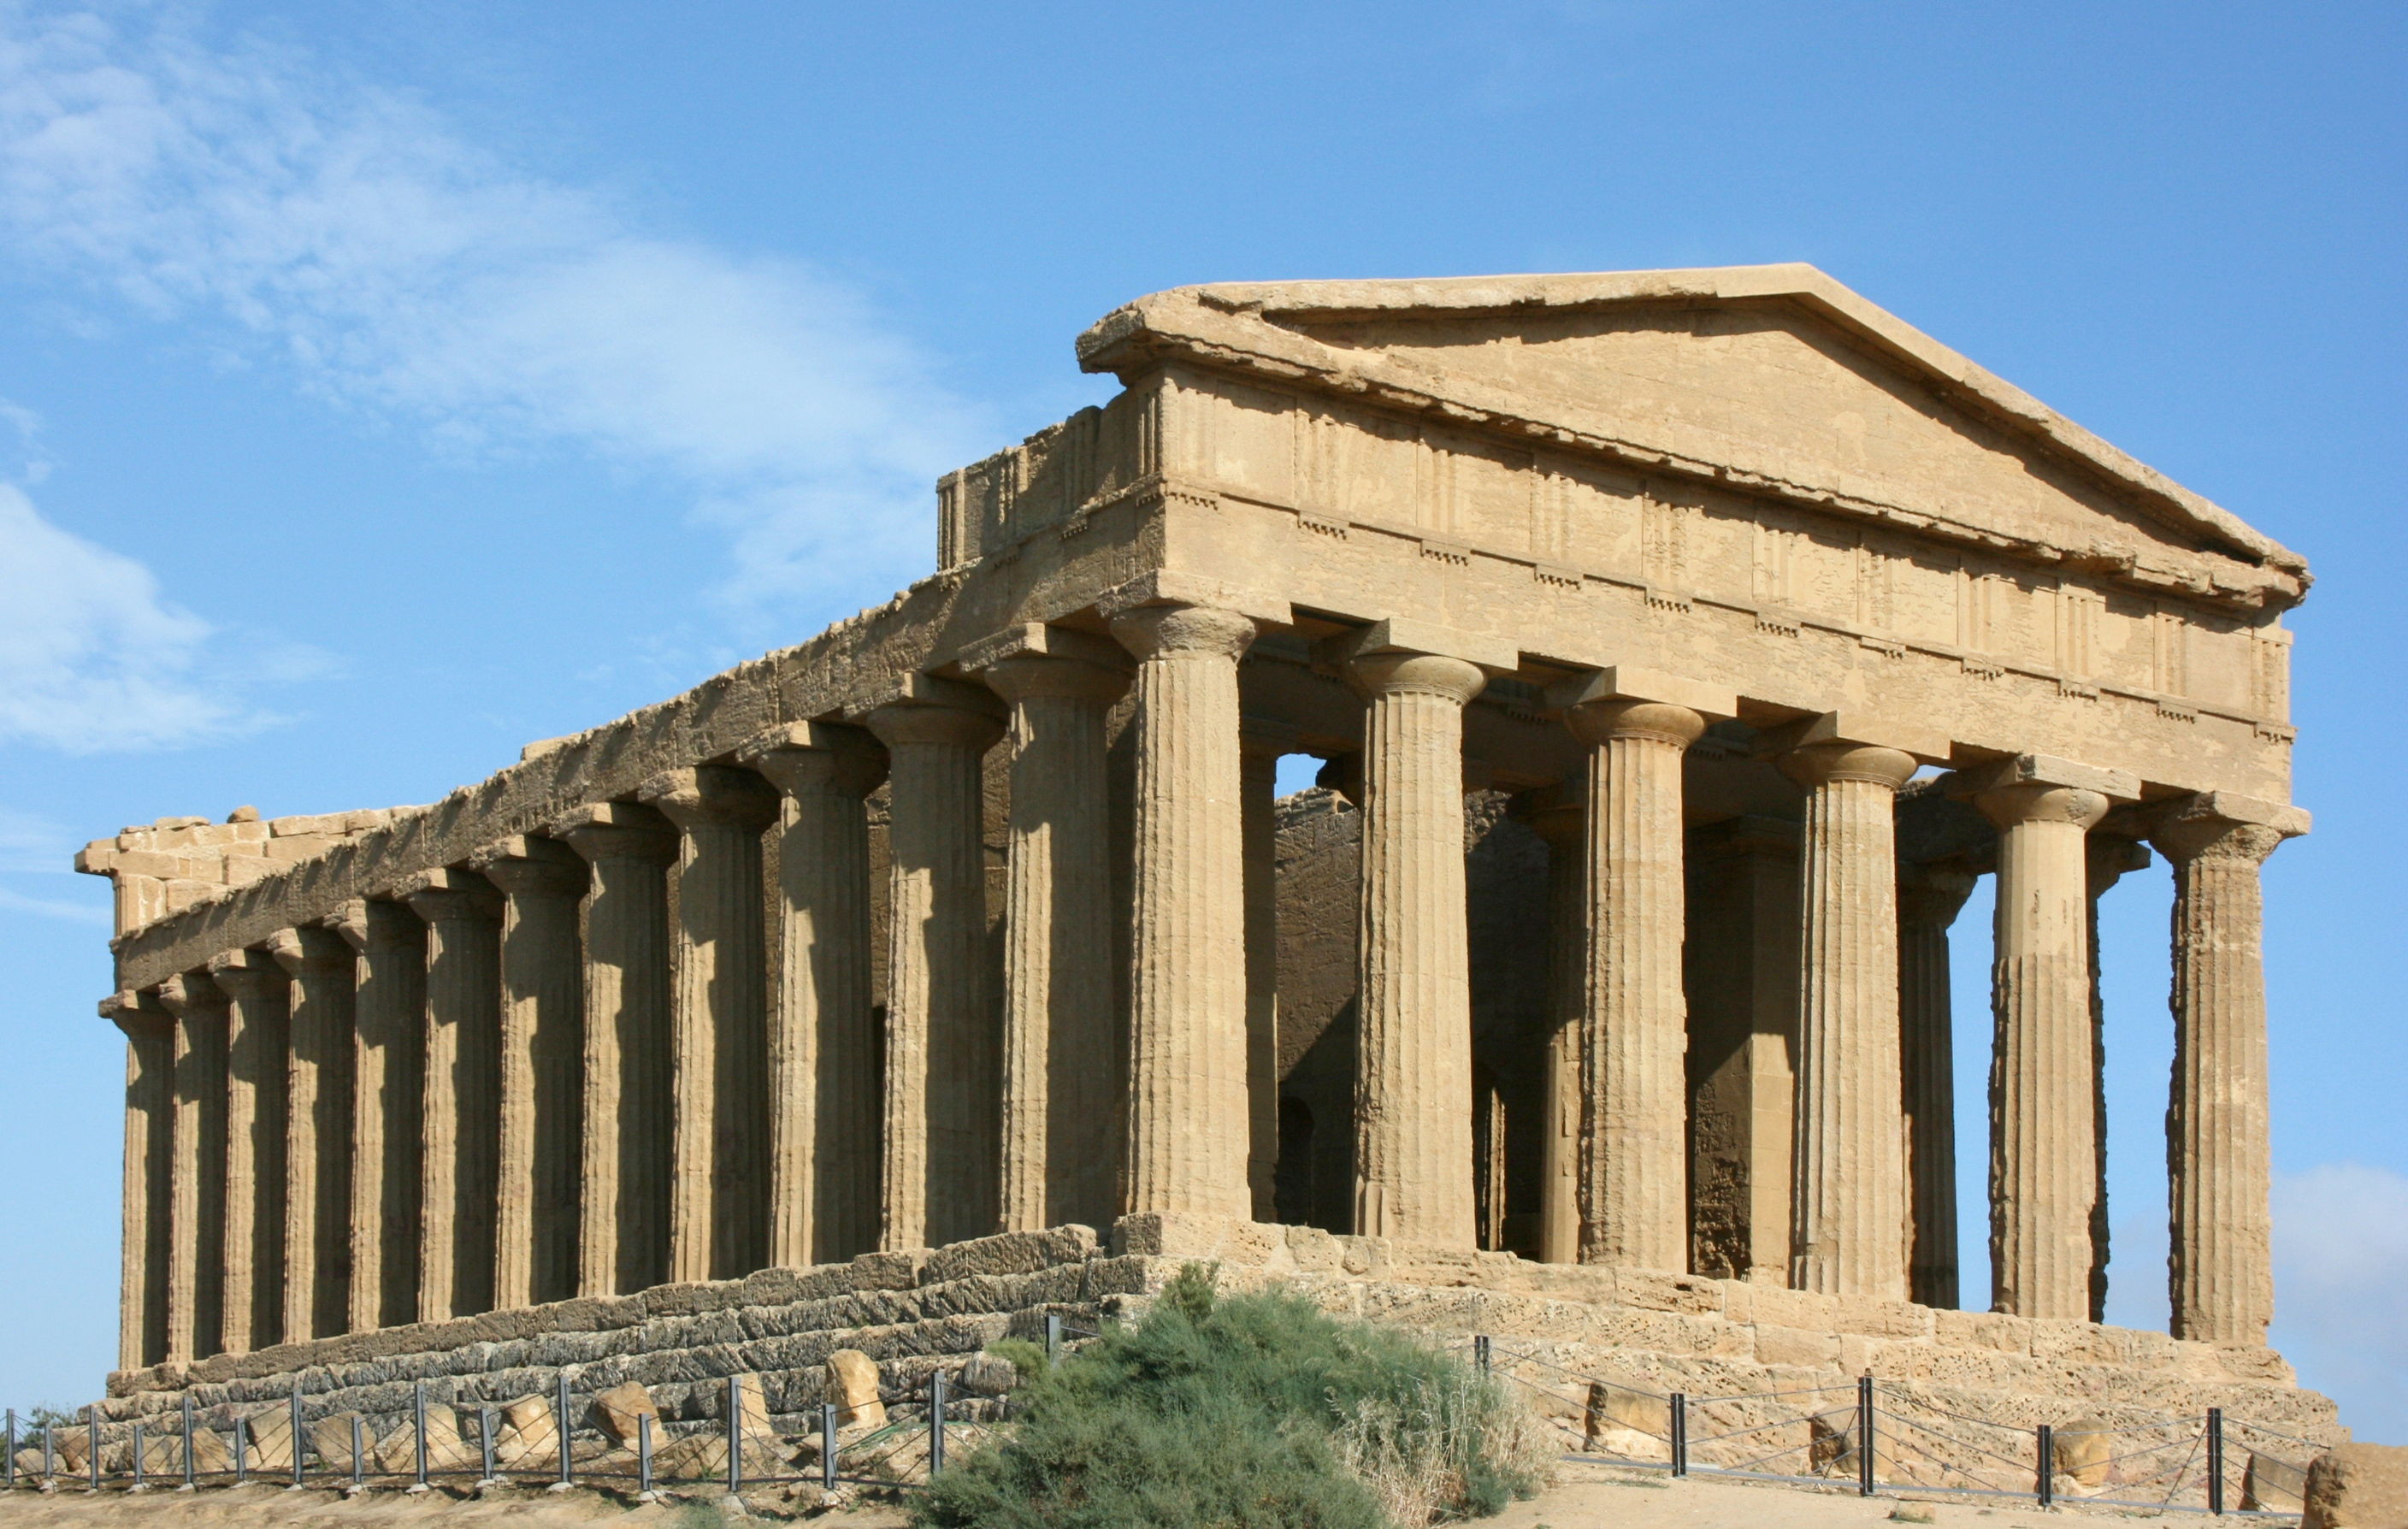 My Greek Experience : Greek Architecture and Leaders